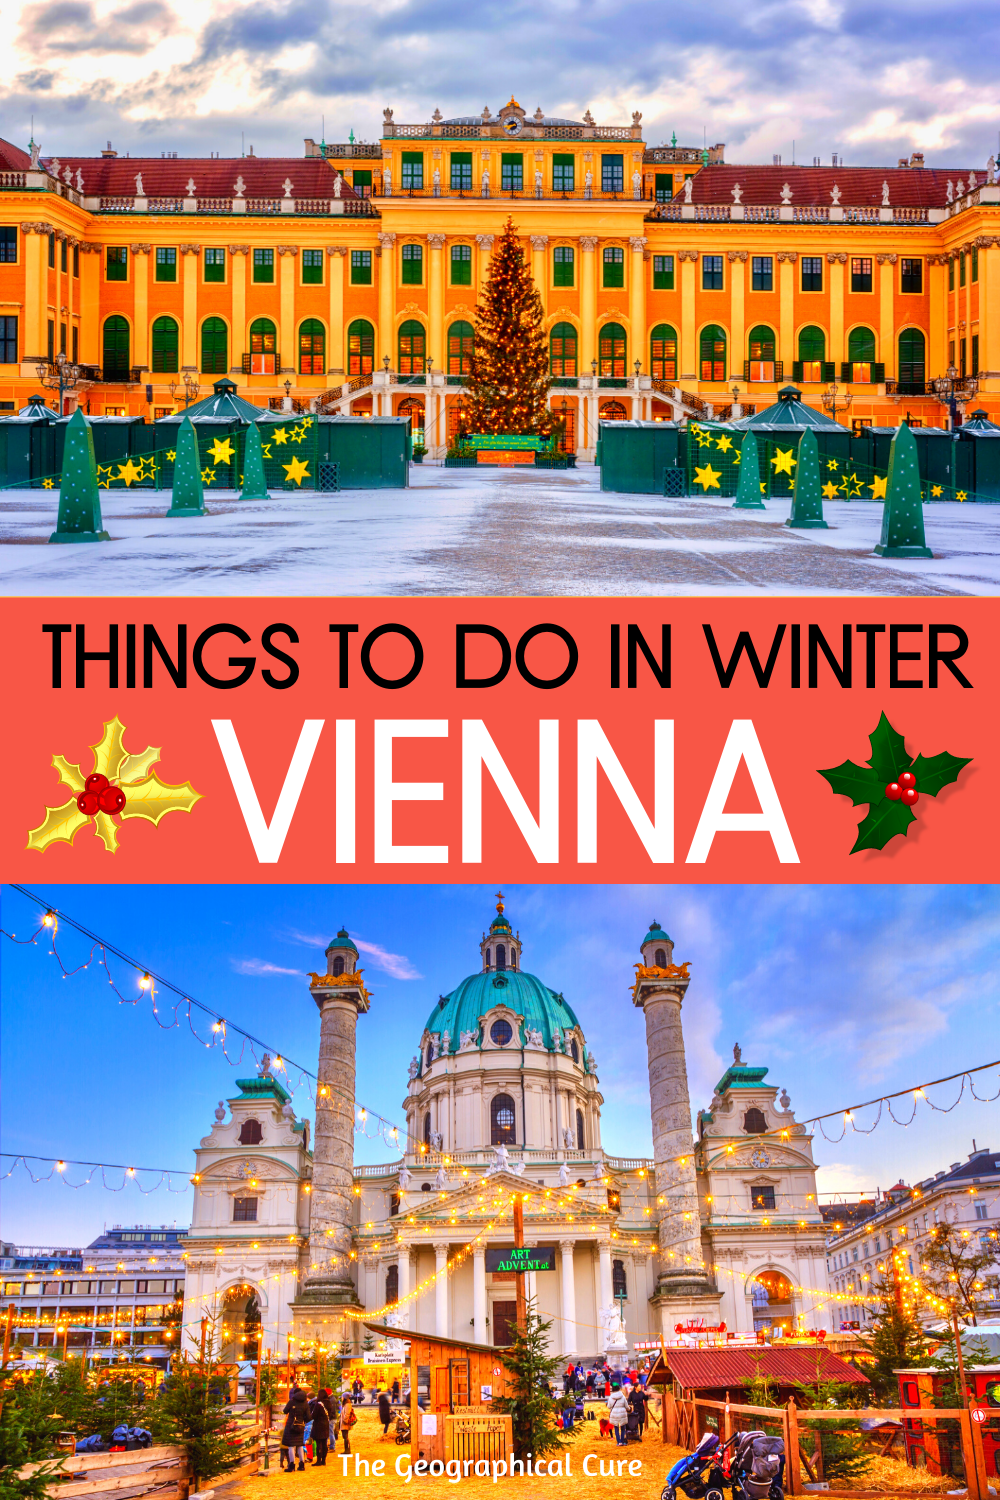 Best Things To Do In Winter in Vienna Austria